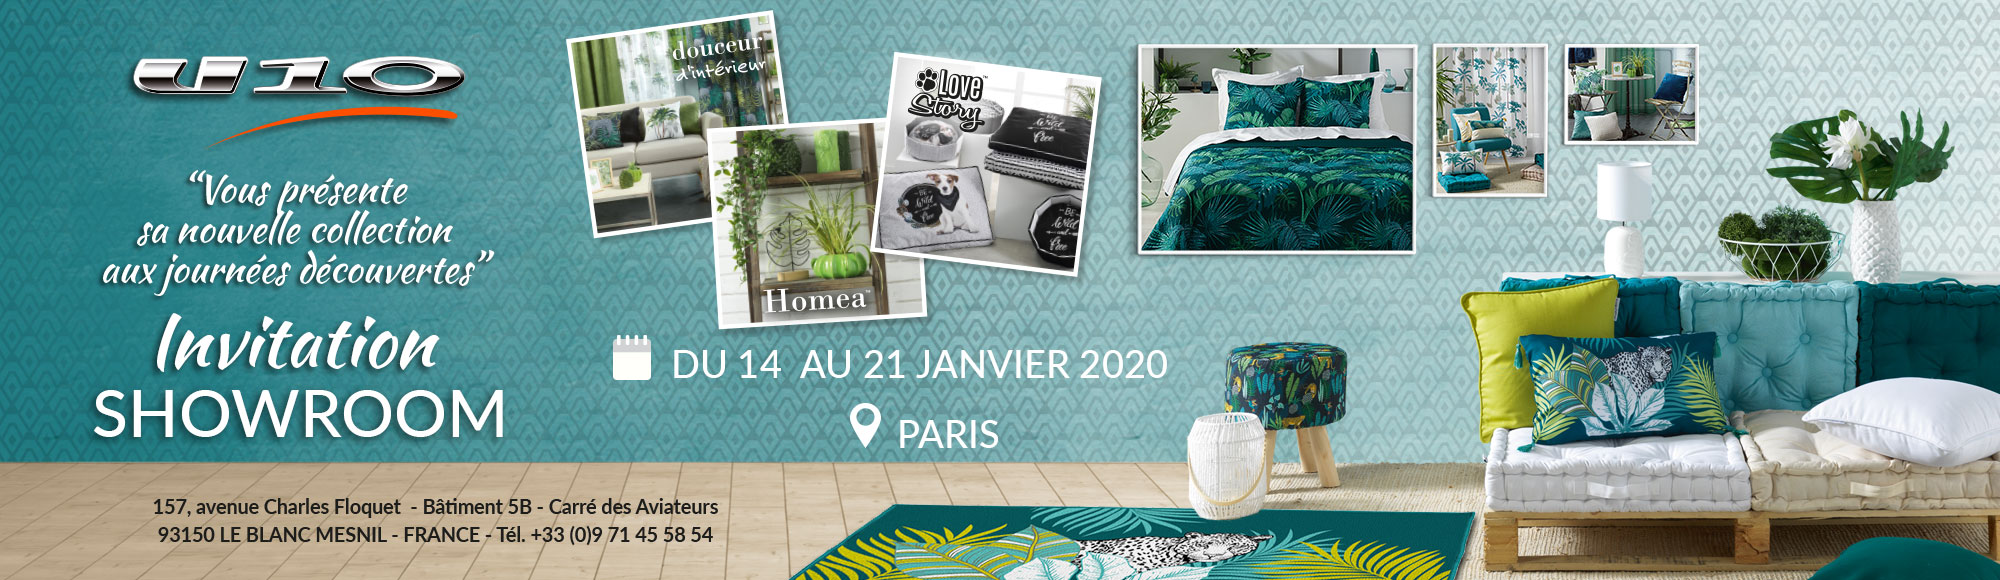 U10 - Porte ouverte - Showroom invitation - du 14 au 21 Janvier 2020 - Paris